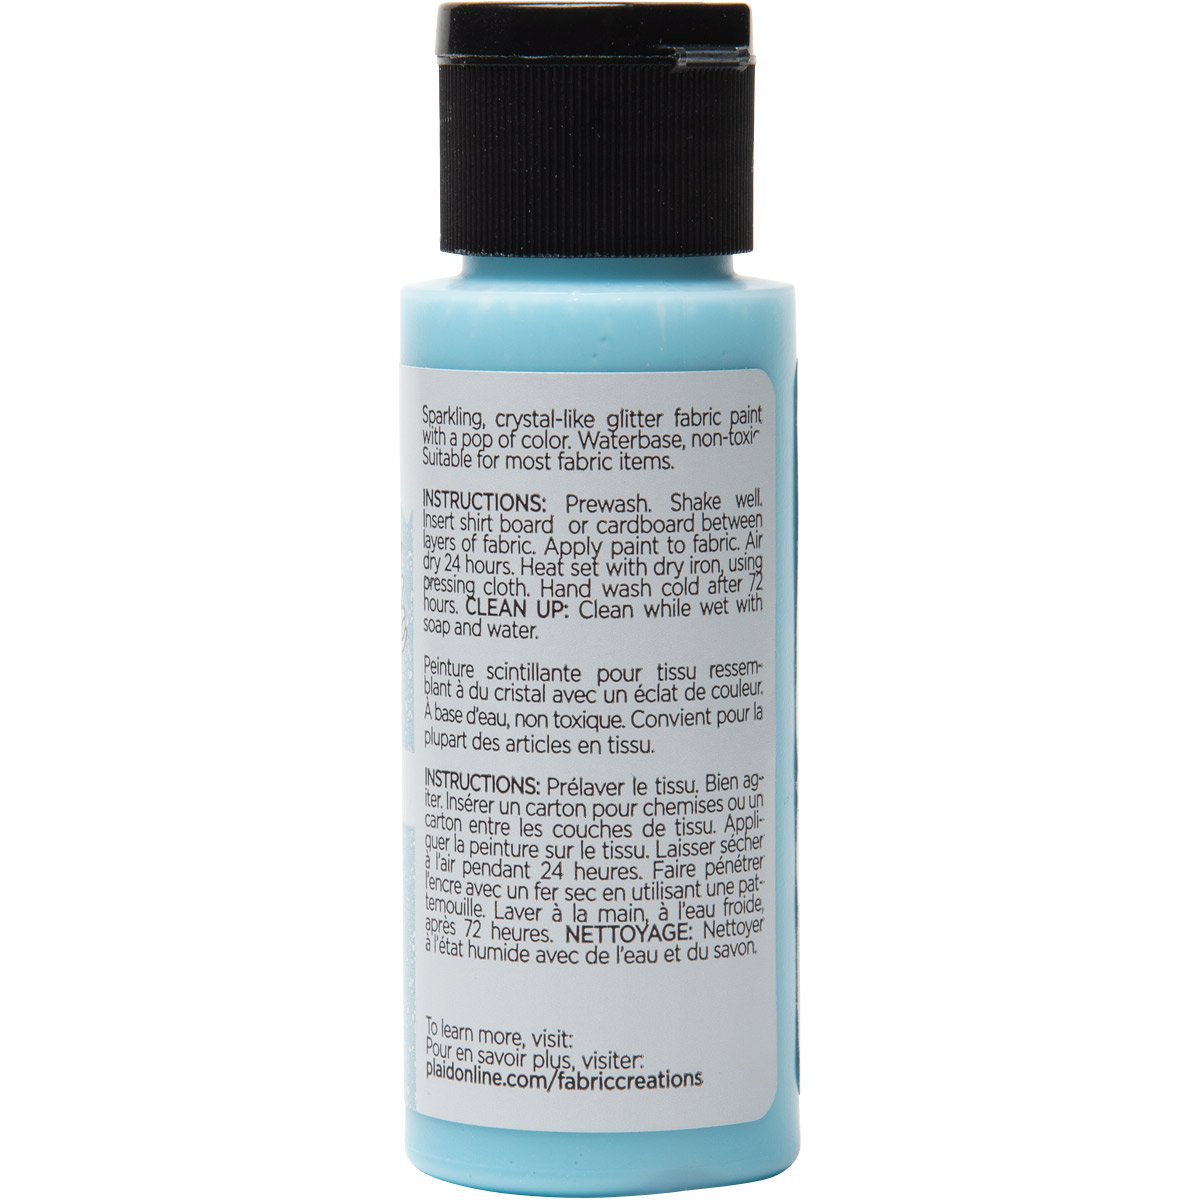 Fabric Creations™ StarStruck Glitter™ Fabric Paint - Light Blue Ice, 2 oz. - 44683